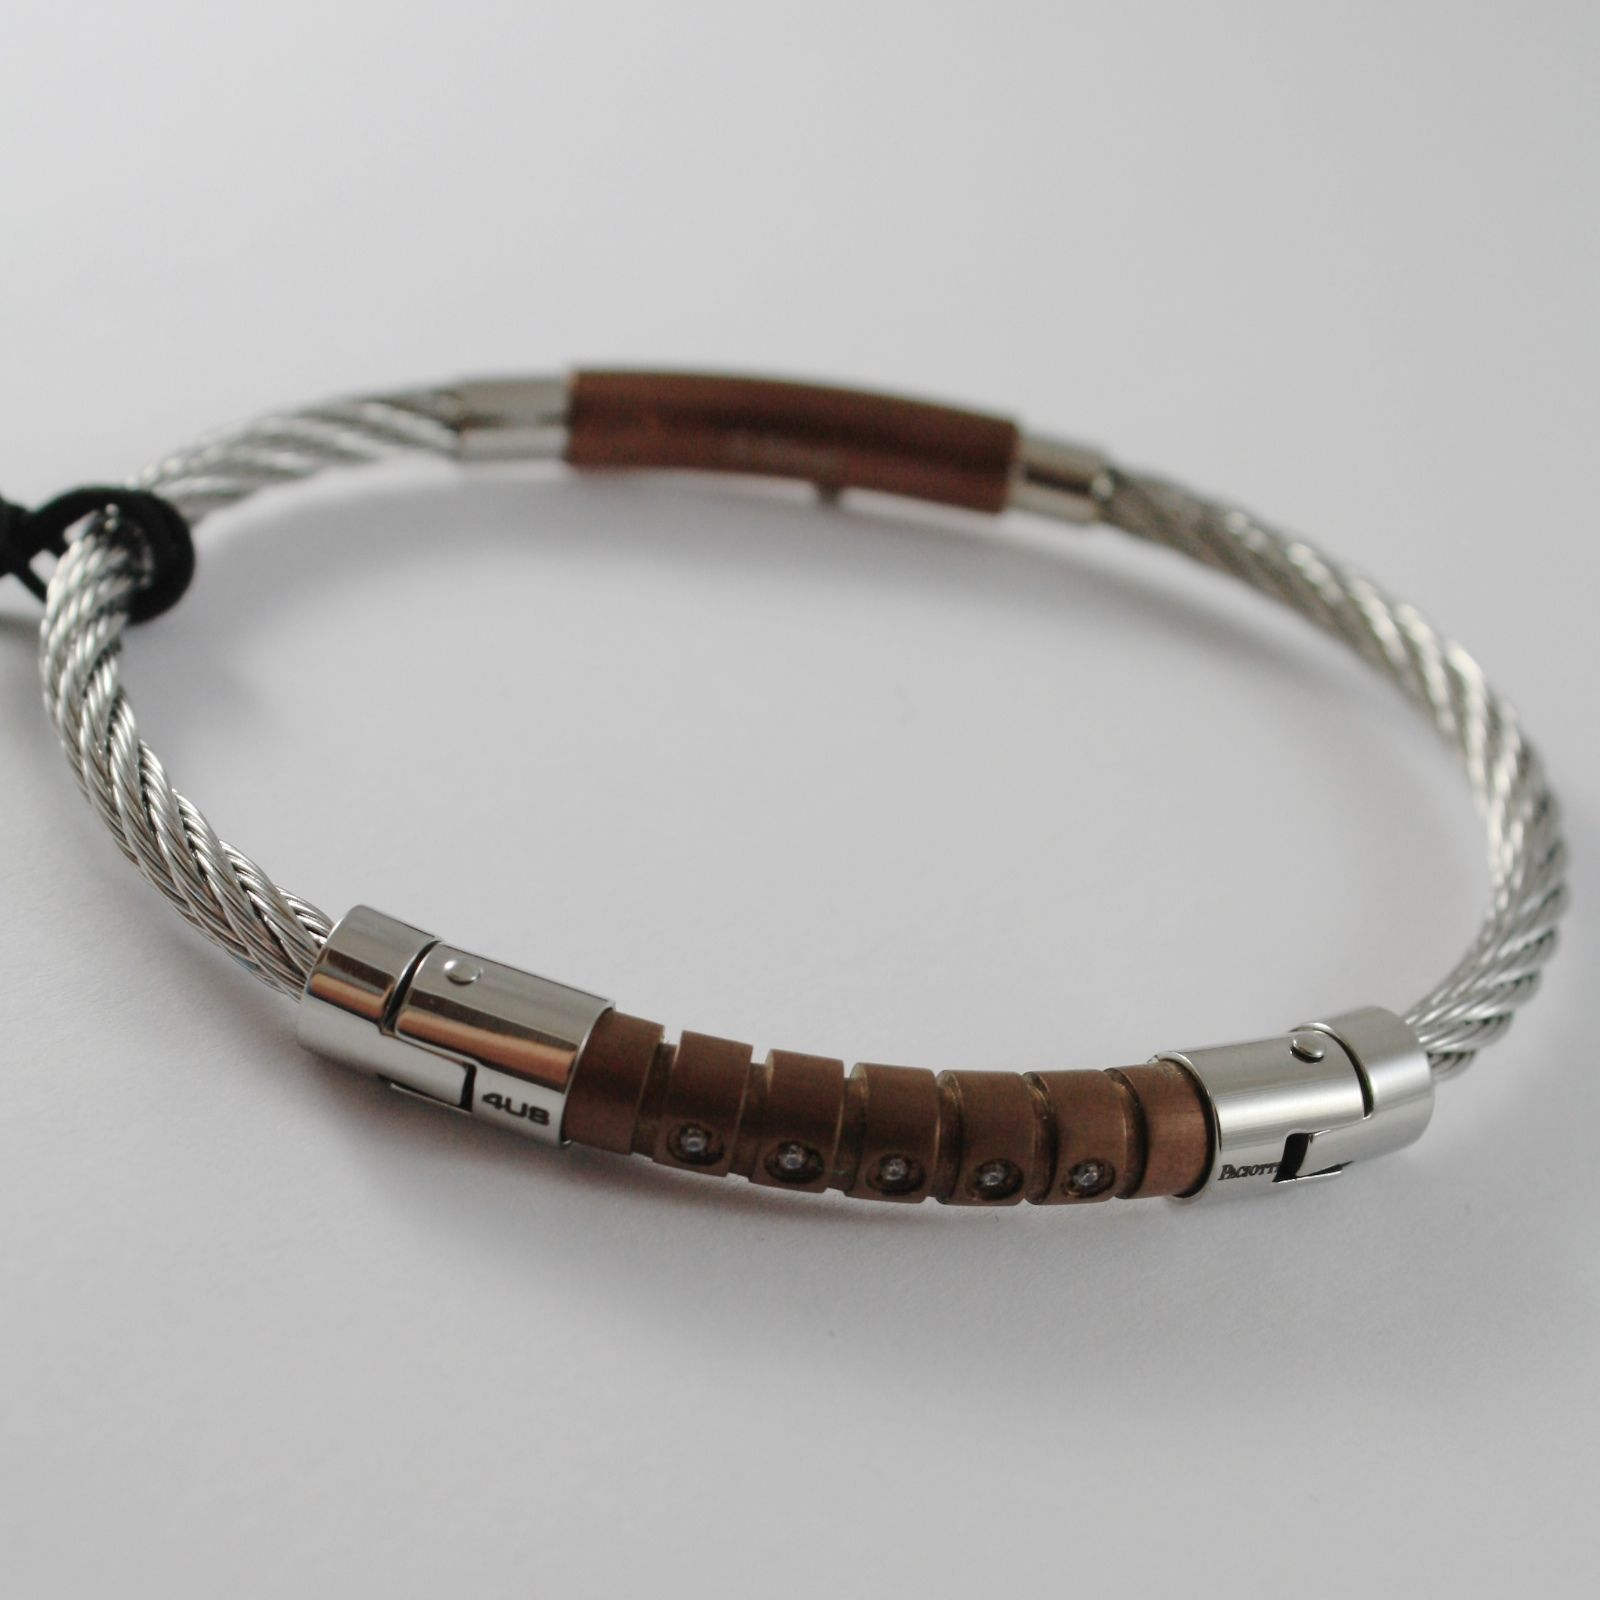 STAINLESS BROWN STEEL WIRE CABLE RIGID BANGLE ZIRCONIA BRACELET, CESARE PACIOTTI